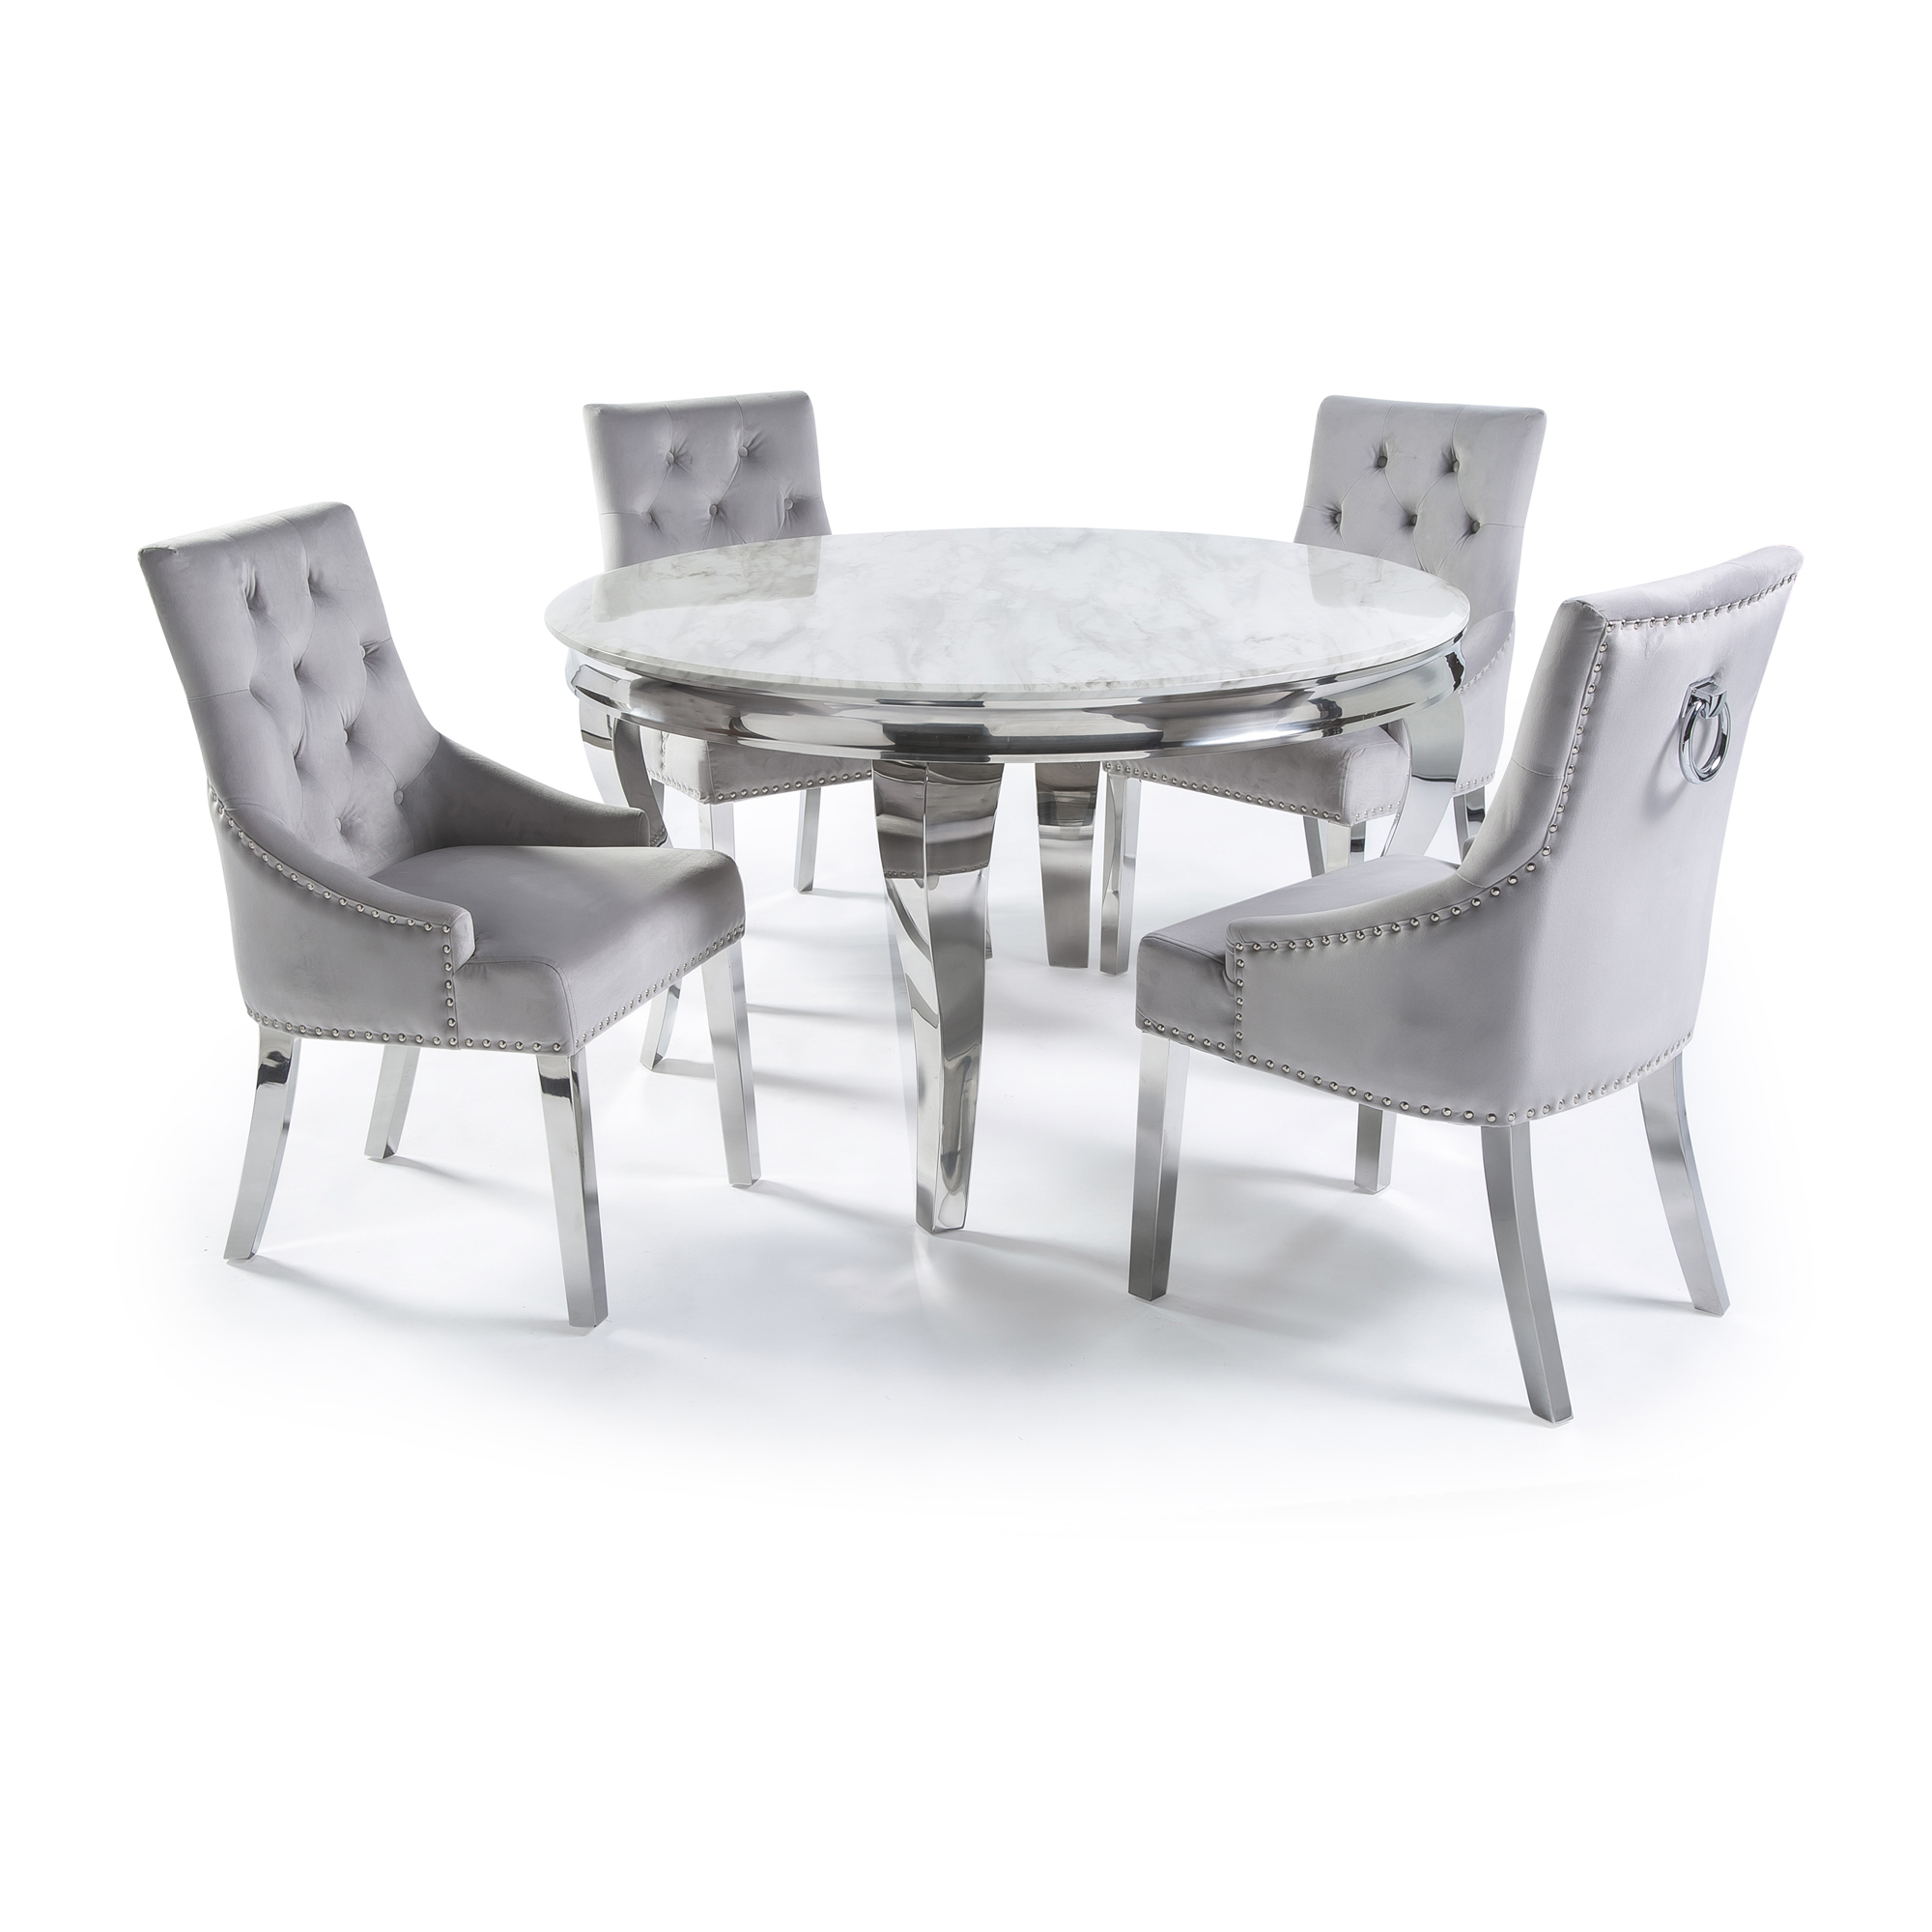 1.3m Circular Louis Polished Steel Dining White Marble Table Set with 4 Dove Grey Brushed Velvet Dining Chair